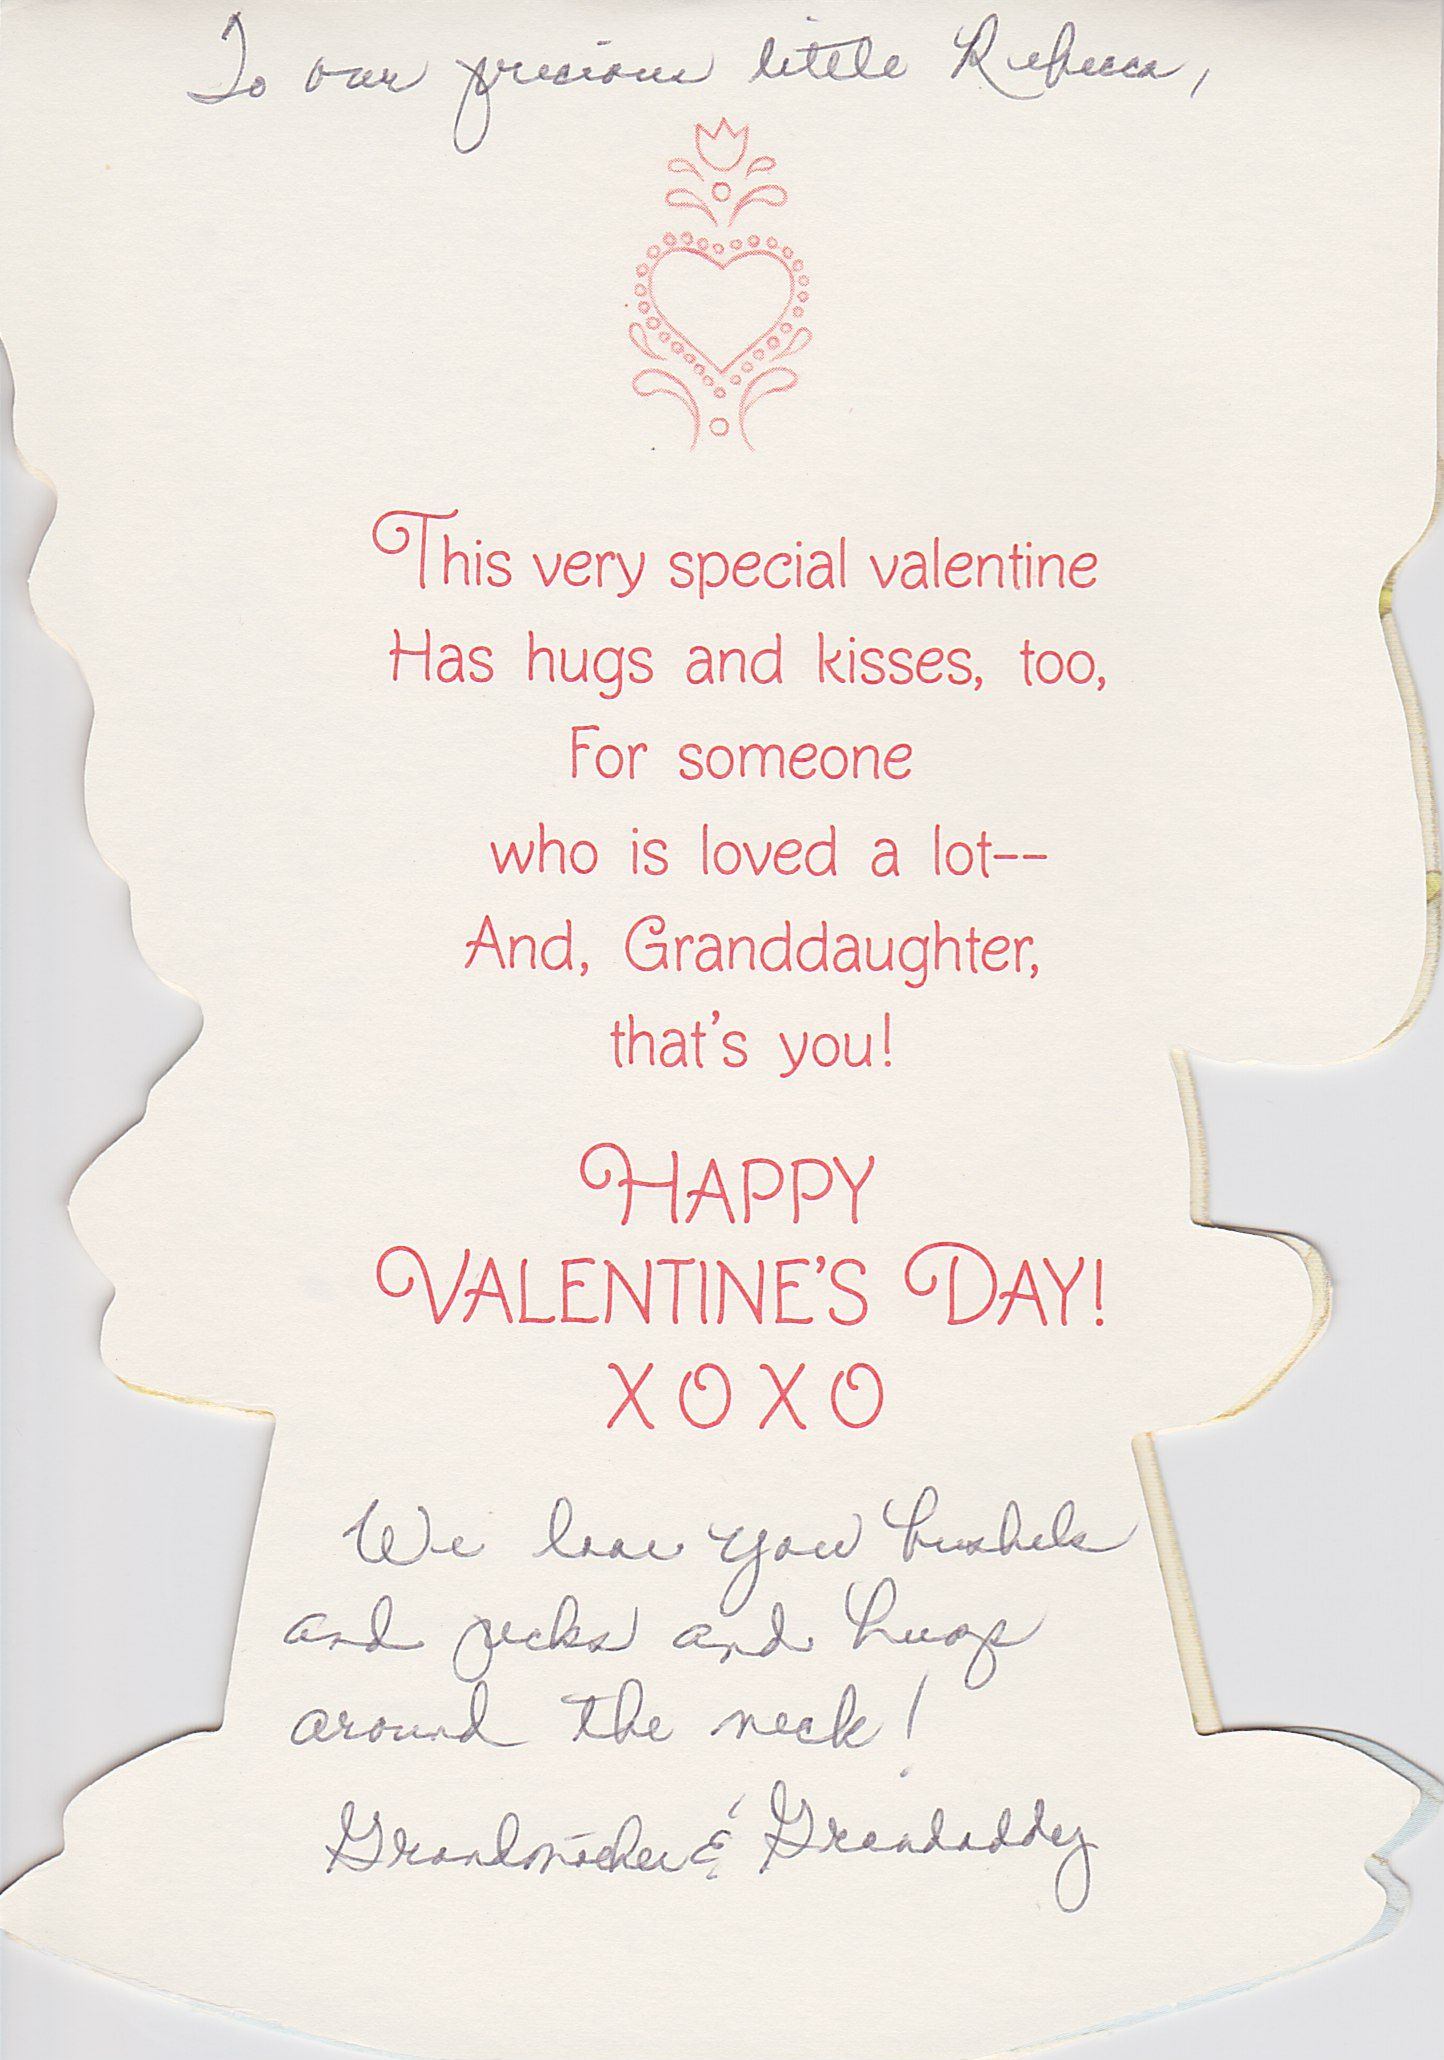 A Valentines Day card to Rebecca from Mimi and Bran Bran II